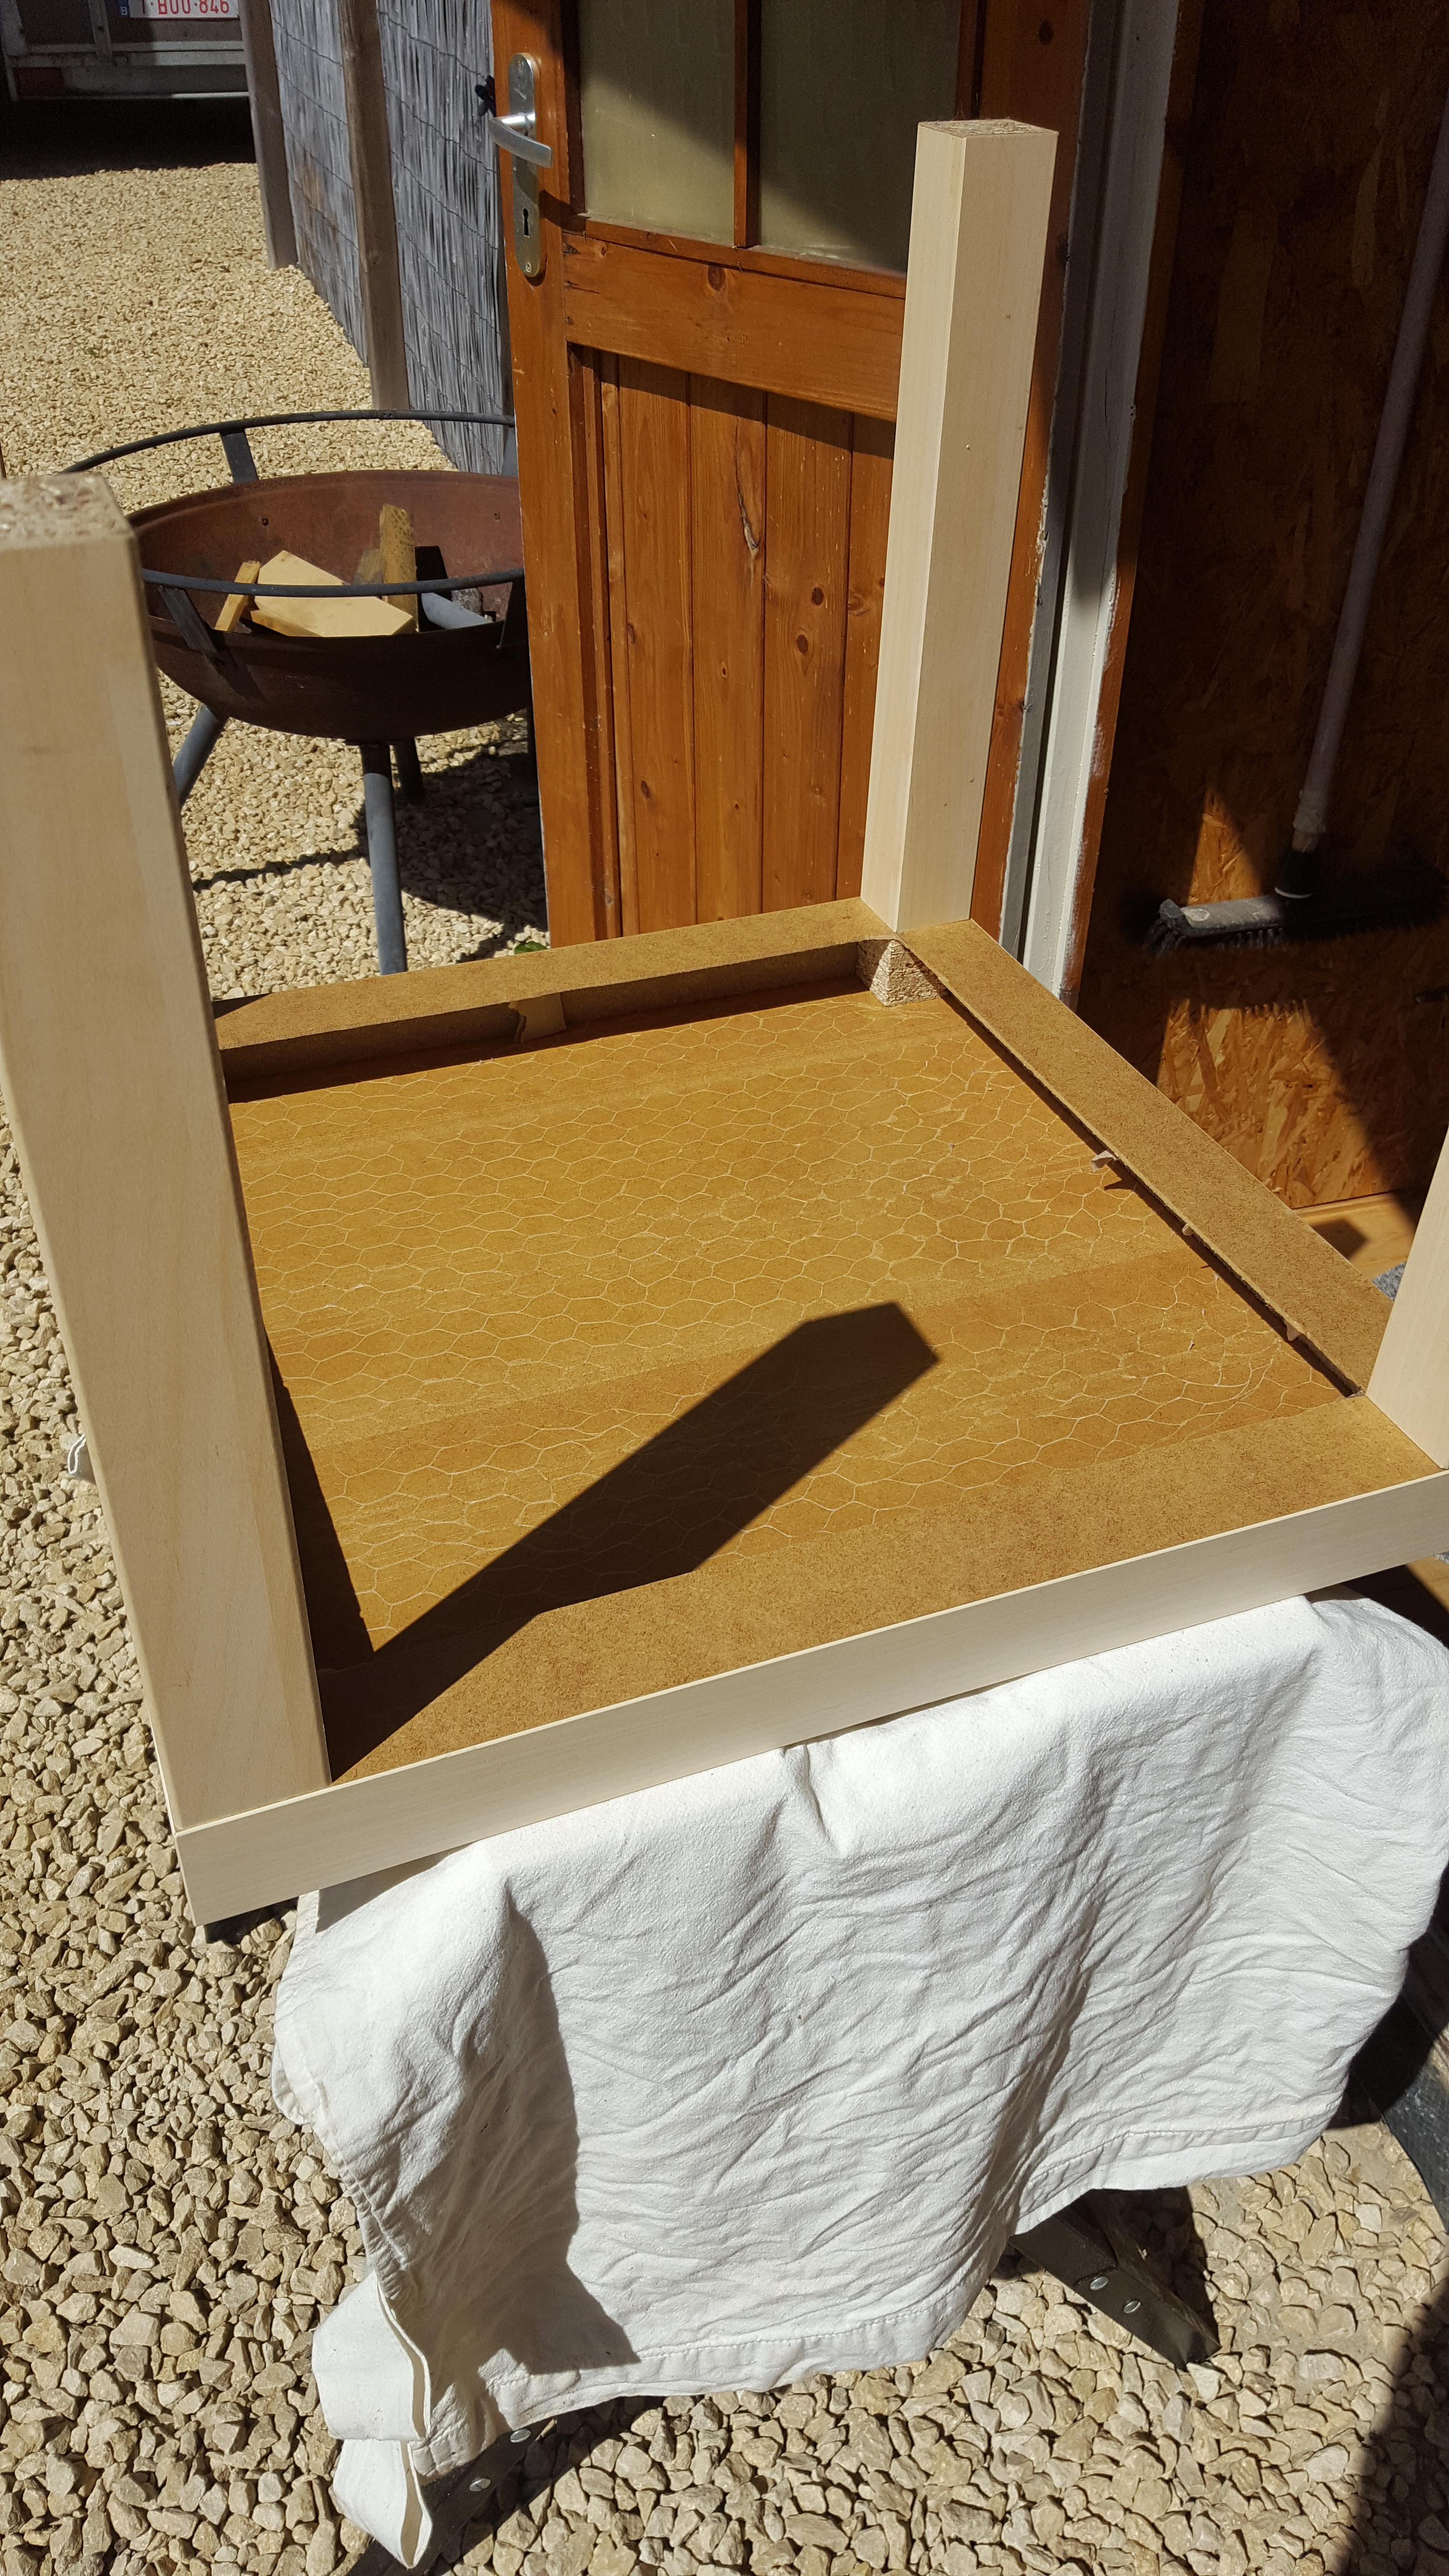 Picture of Hack the Ikea Table to Receive the Display of Your Retro Arcade Gaming Table